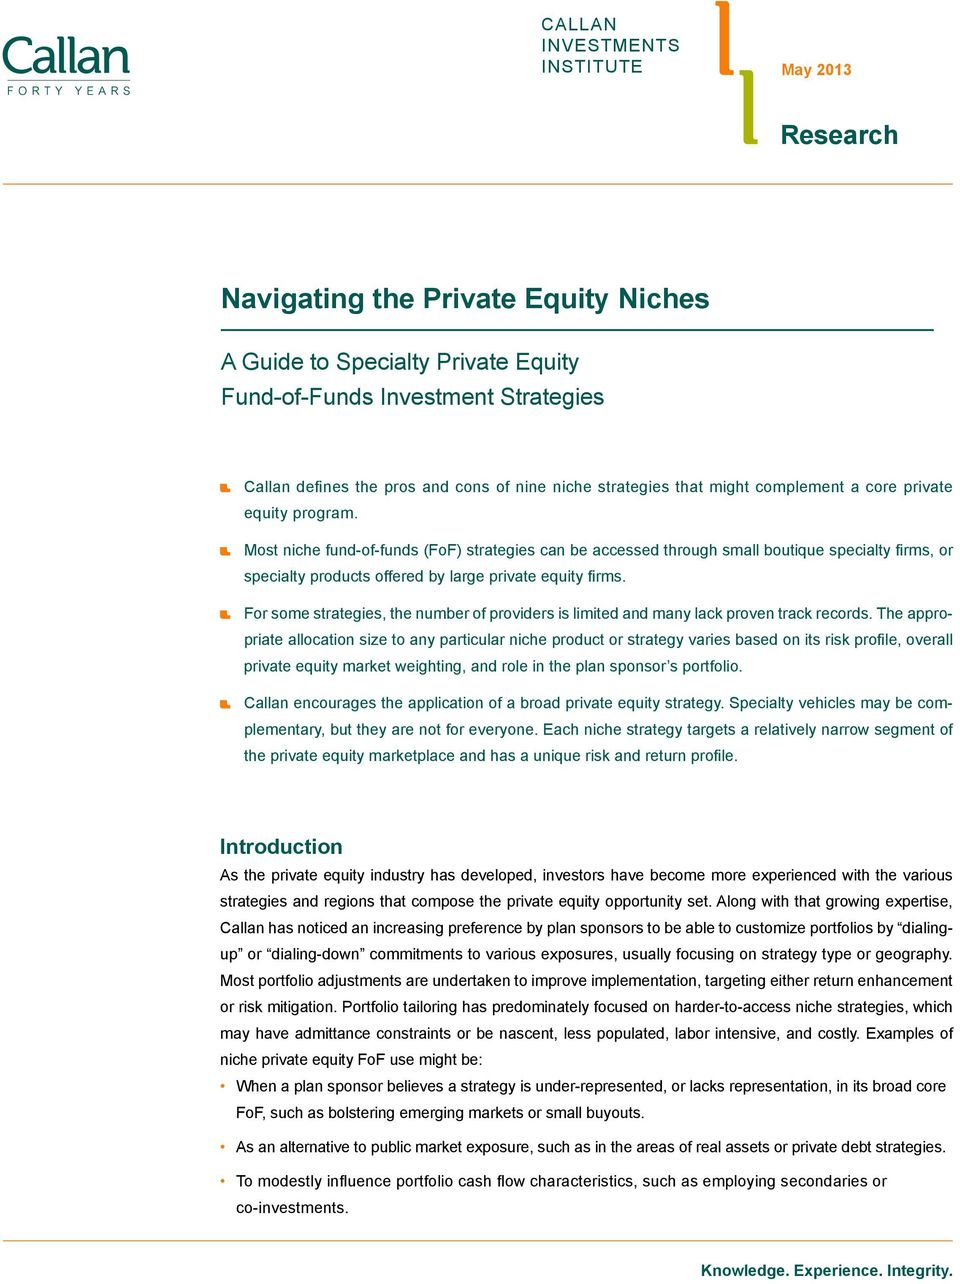 Most niche fund-of-funds (FoF) strategies can be accessed through small boutique specialty firms, or specialty products offered by large private equity firms.